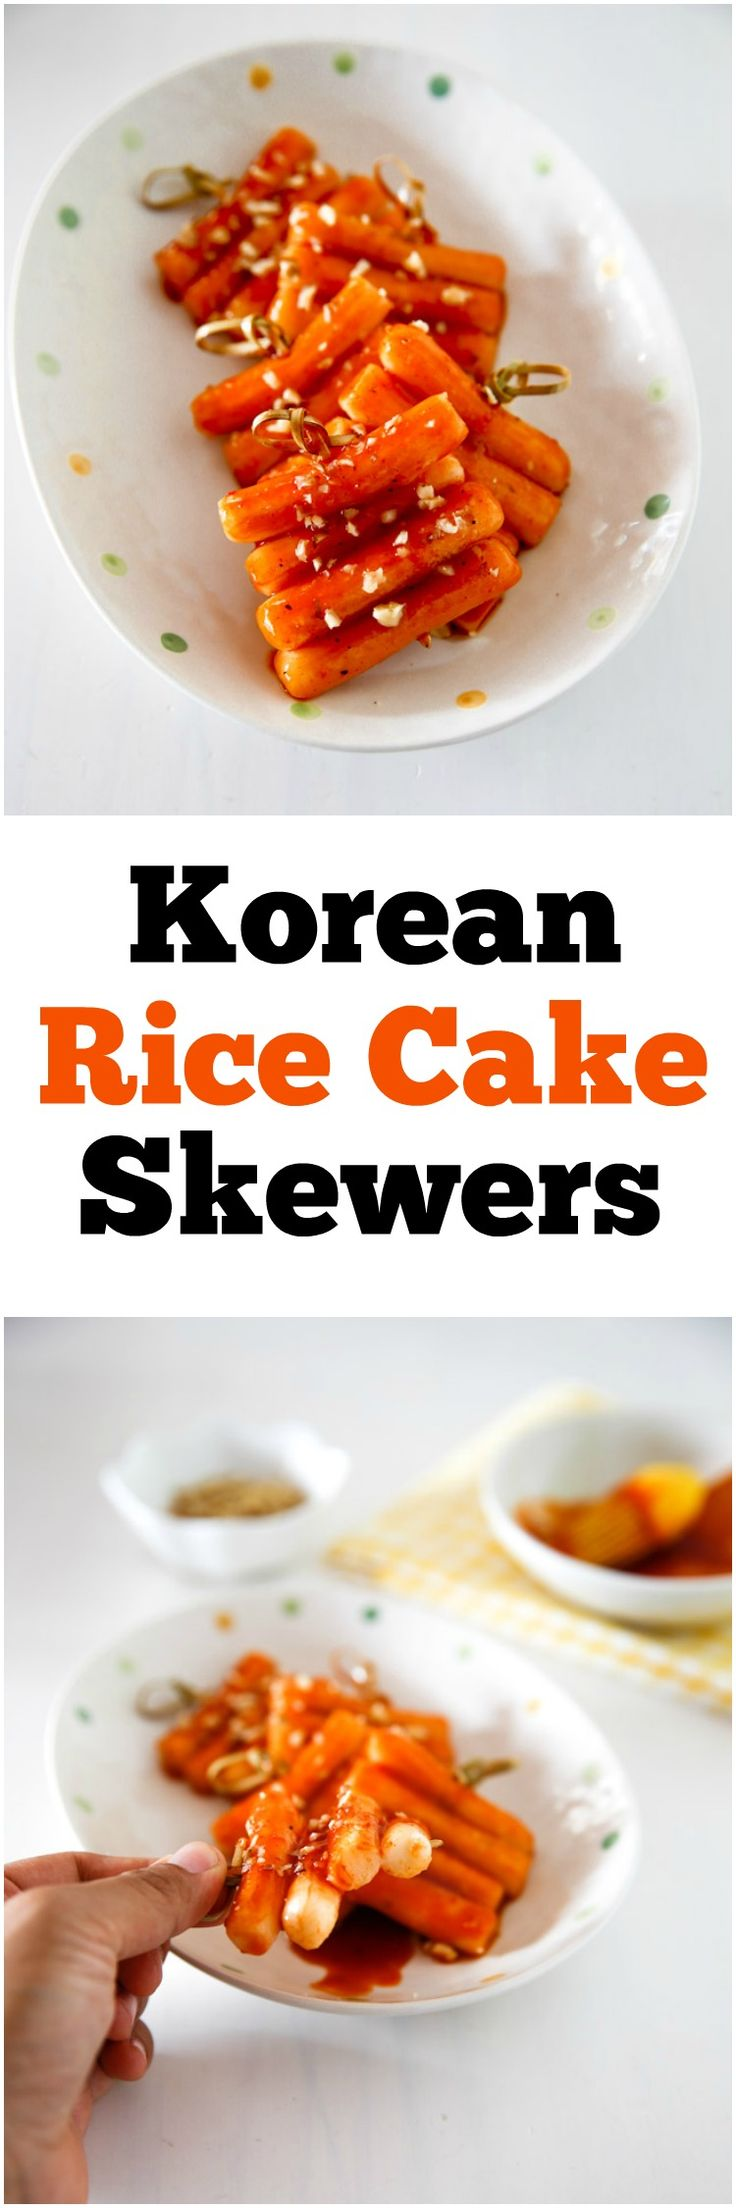 247 best korean food desserts and snacks images on pinterest how to make korean rice cake skewers tteeok kkochi at home its one forumfinder Image collections